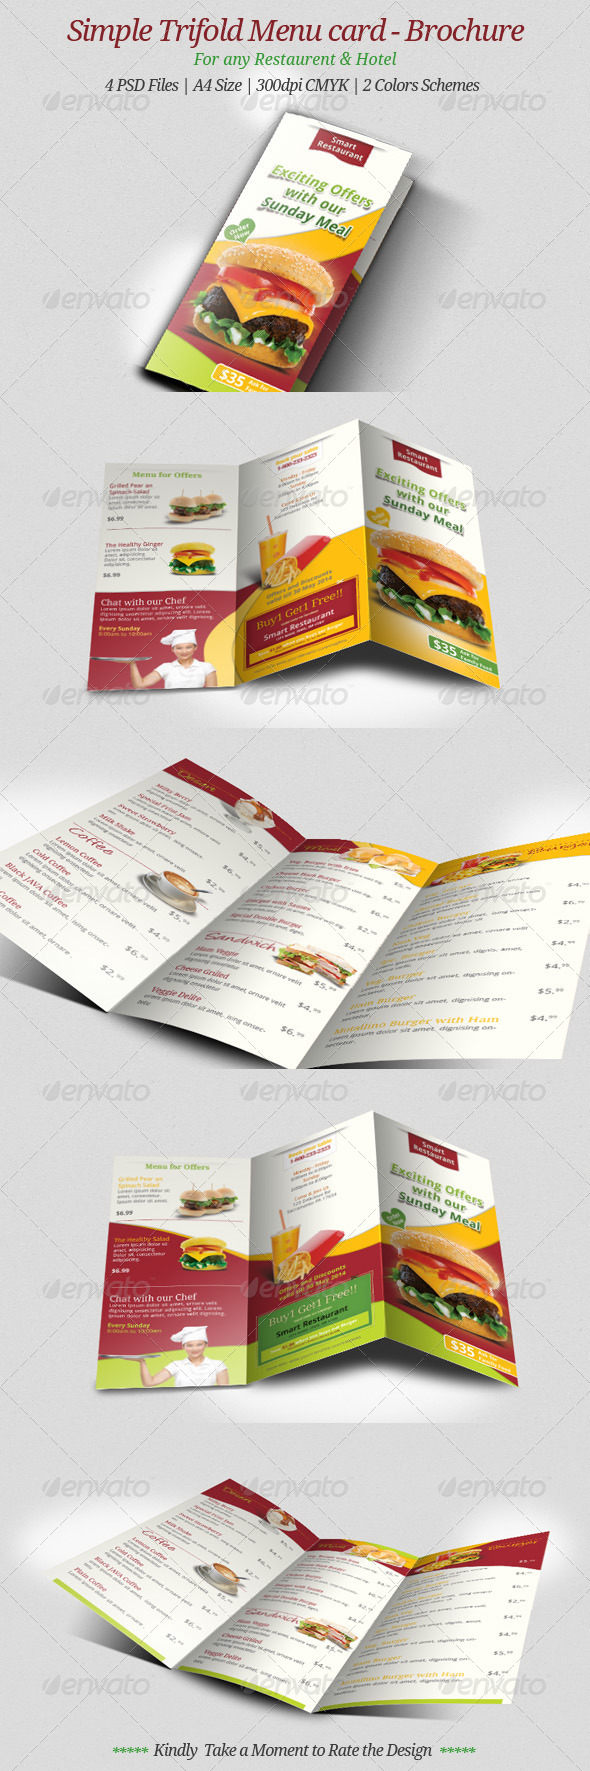 GraphicRiver Simple Trifold Menu Card Brochure 7133373